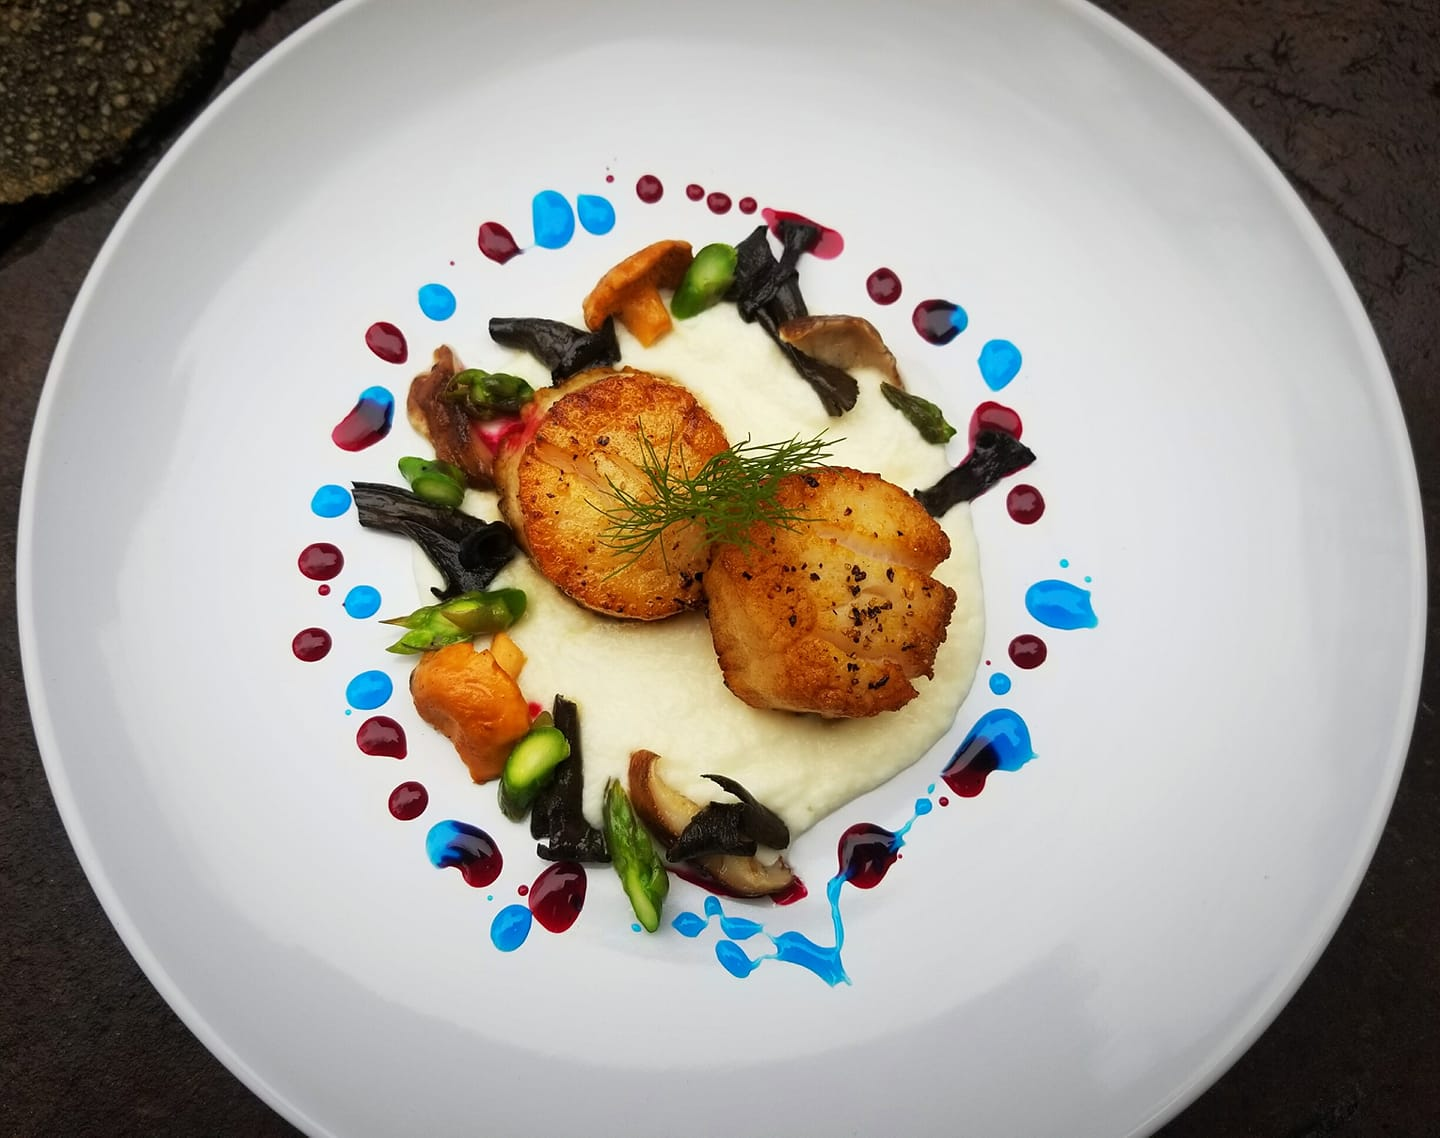 Pan seared scallops over polenta and assorted mixed veggies